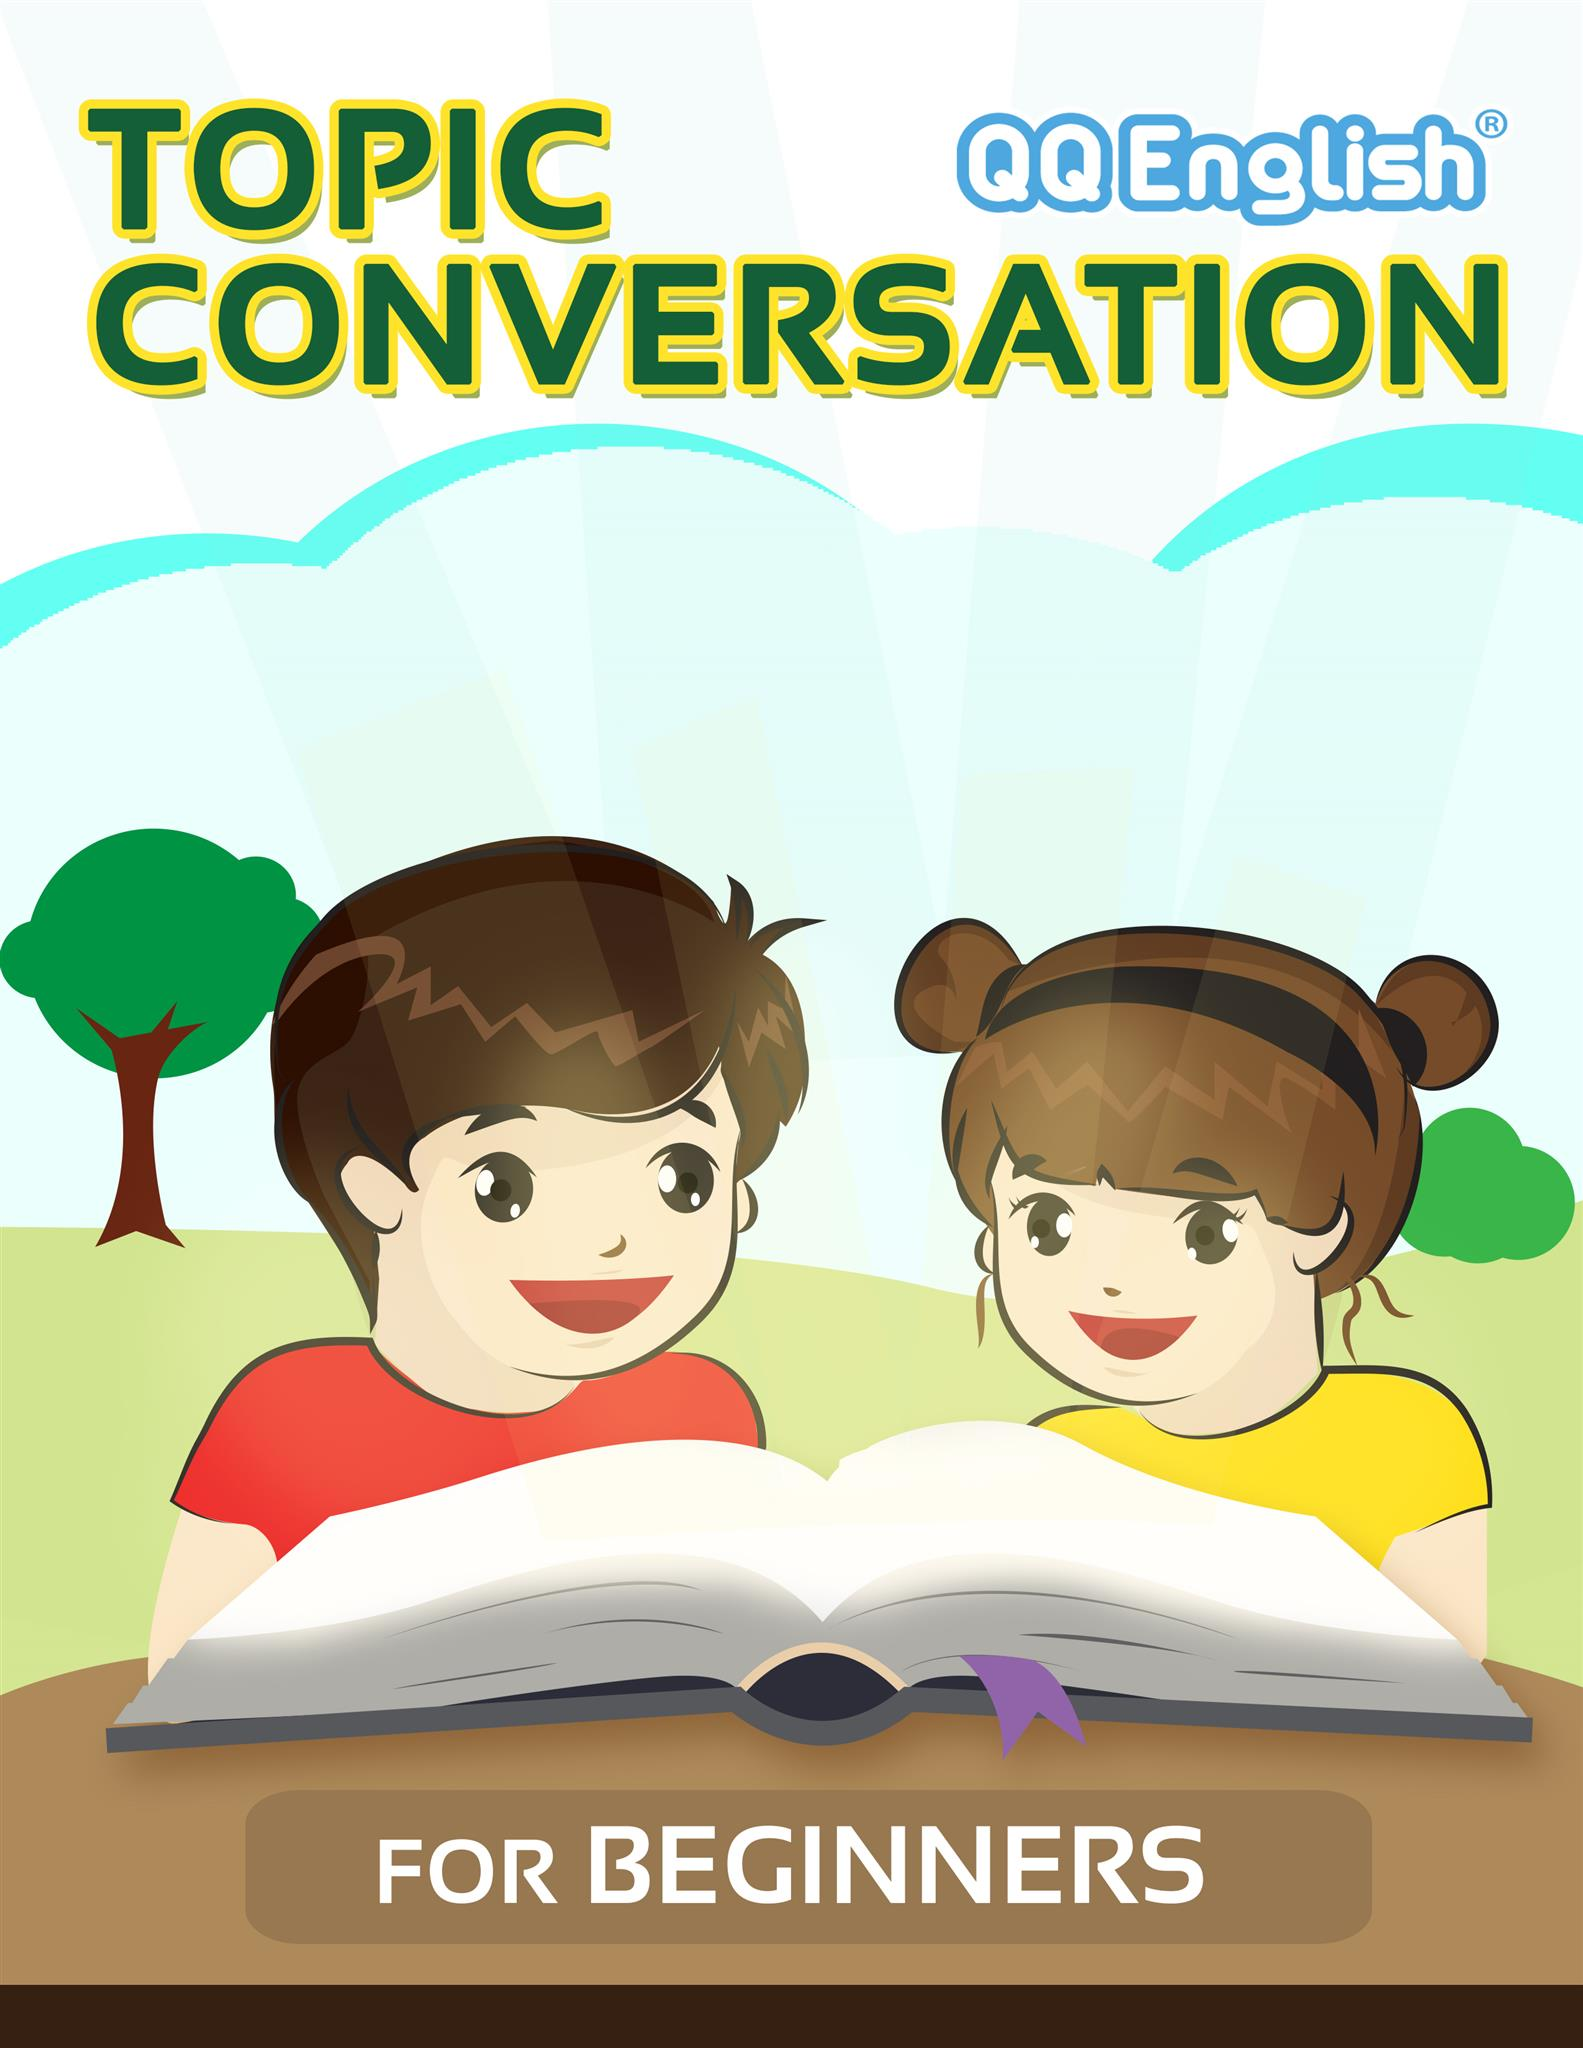 Topic Conversation